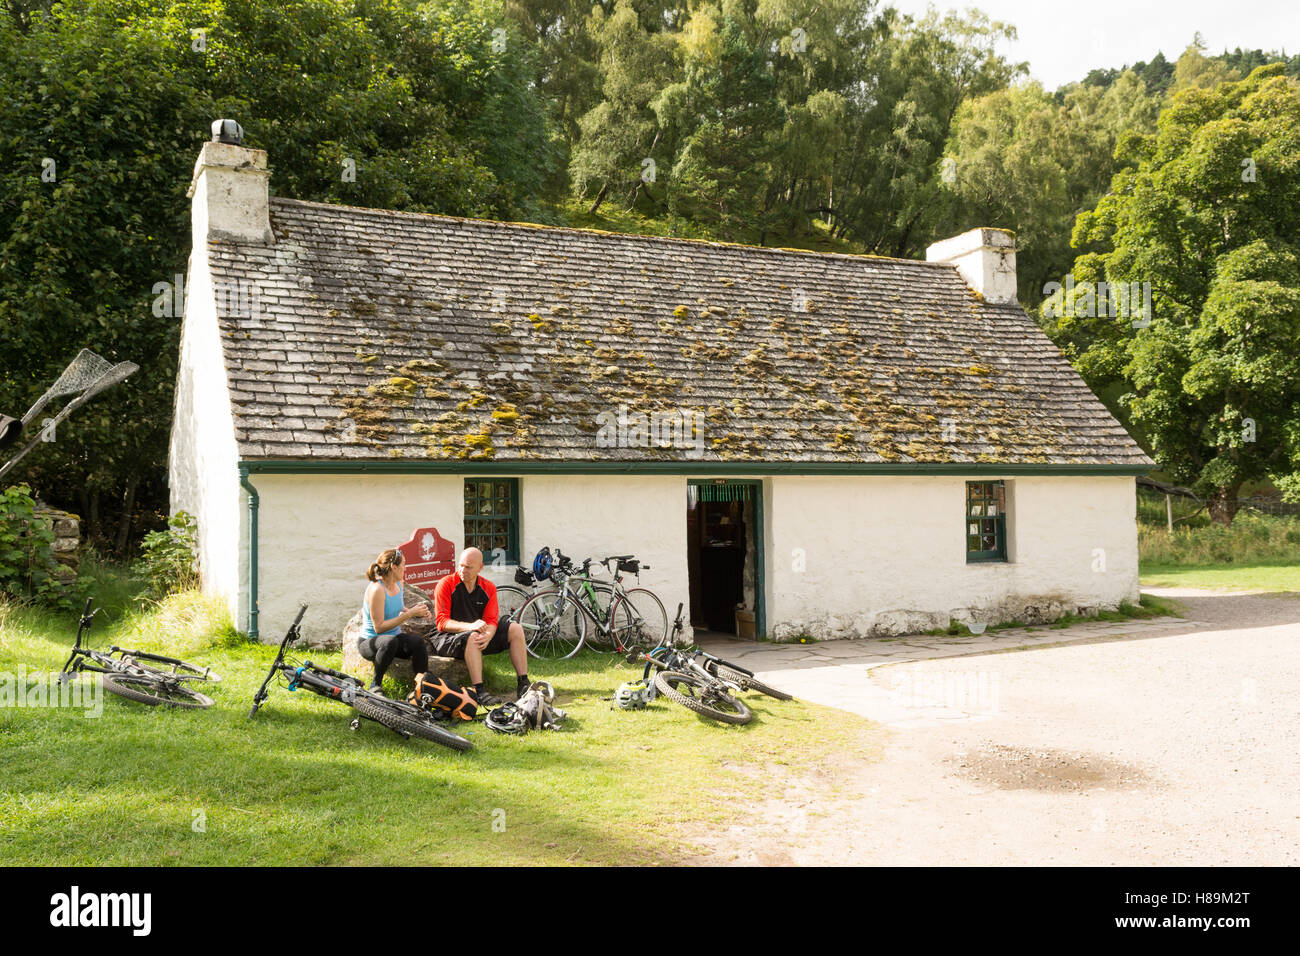 Loch an Eilein Centre - gallery and craft shop, Loch an Eilein, Rothiemurchus Estate, Aviemore, Scotland - Stock Image